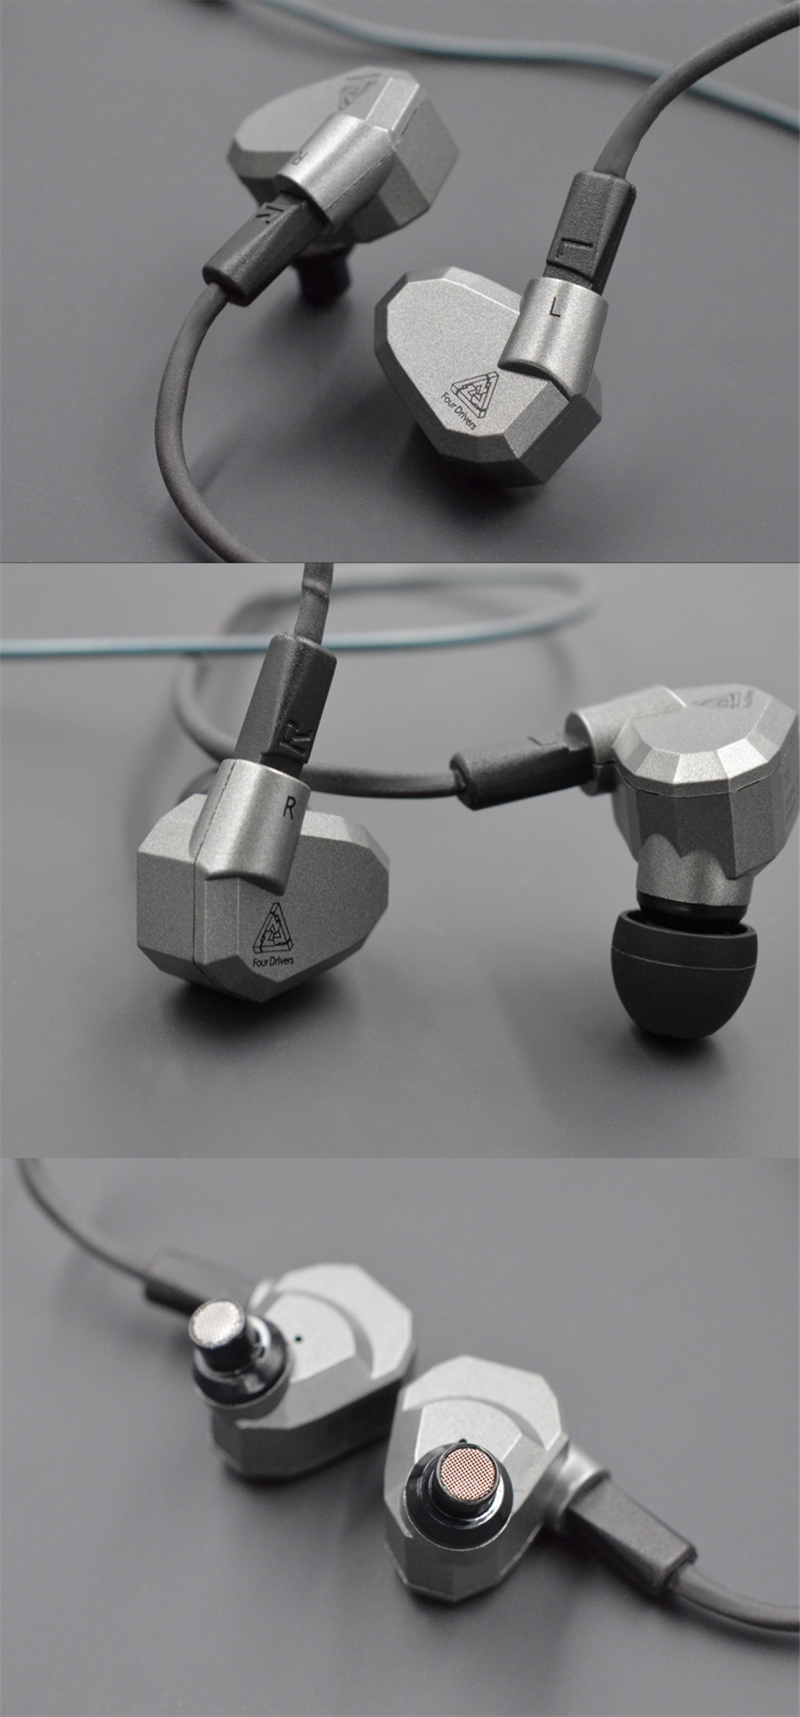 2017_Newest_KZ_ZS5_Heavy_Bass_Stereo_Headphone_Metal_Earbuds_Eight_Units_Dynamic_and_Balanced_Armatures_Hybrid_Earphone_for_Xiaomi_Smasung_Mp3 (14)